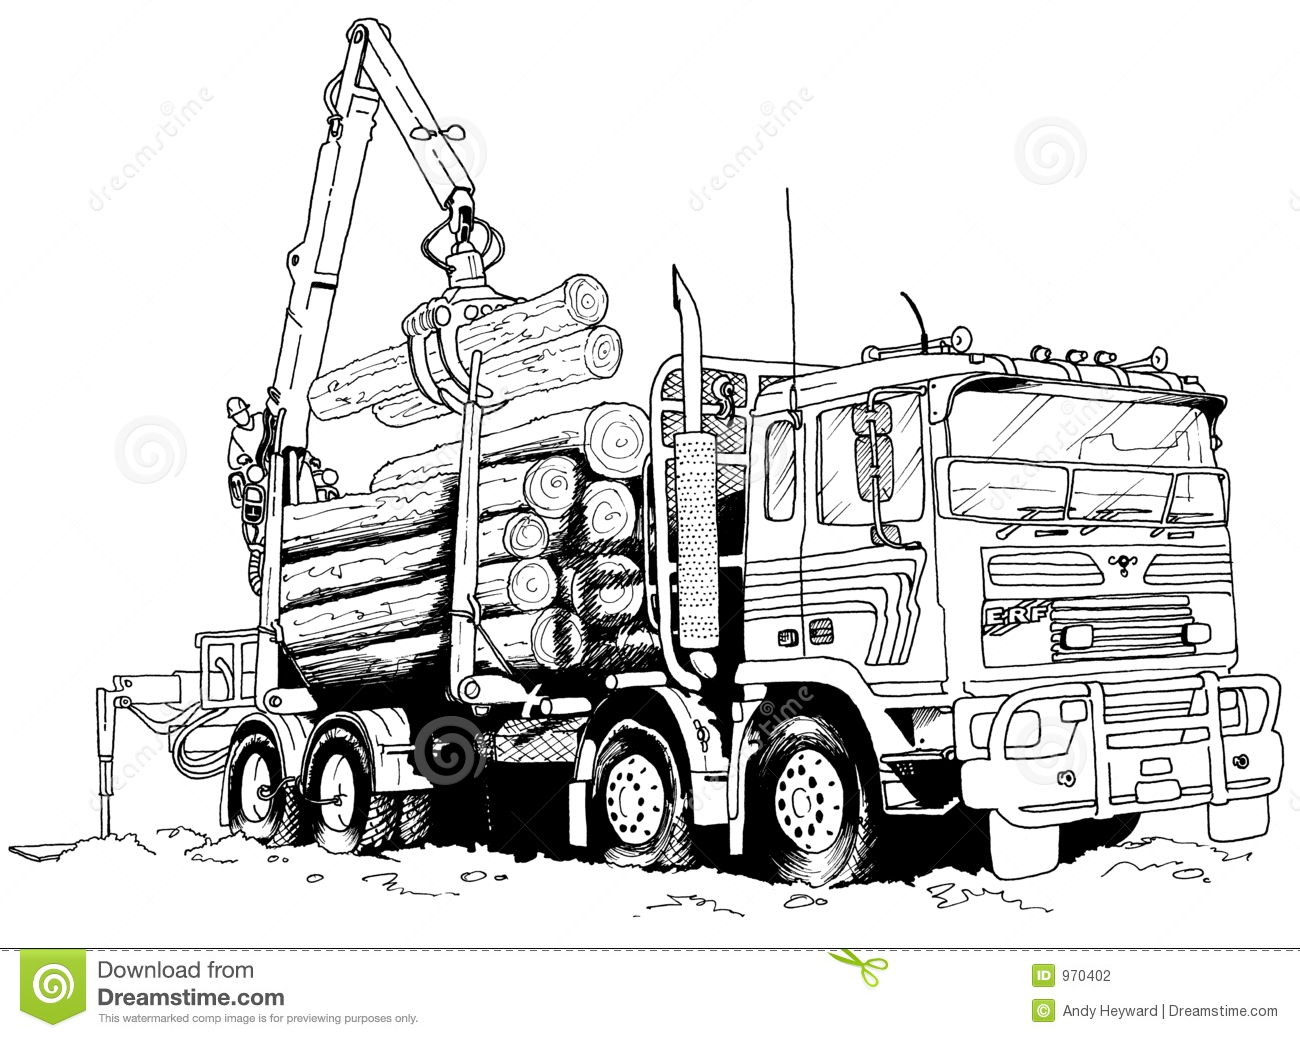 clipart logger clipart log skidder clipart timber clipart illegal k1CwEb clipart also with skidder coloring pages 1 on skidder coloring pages together with skidder coloring pages 2 on skidder coloring pages in addition skidder coloring pages 3 on skidder coloring pages in addition skidder coloring pages 4 on skidder coloring pages